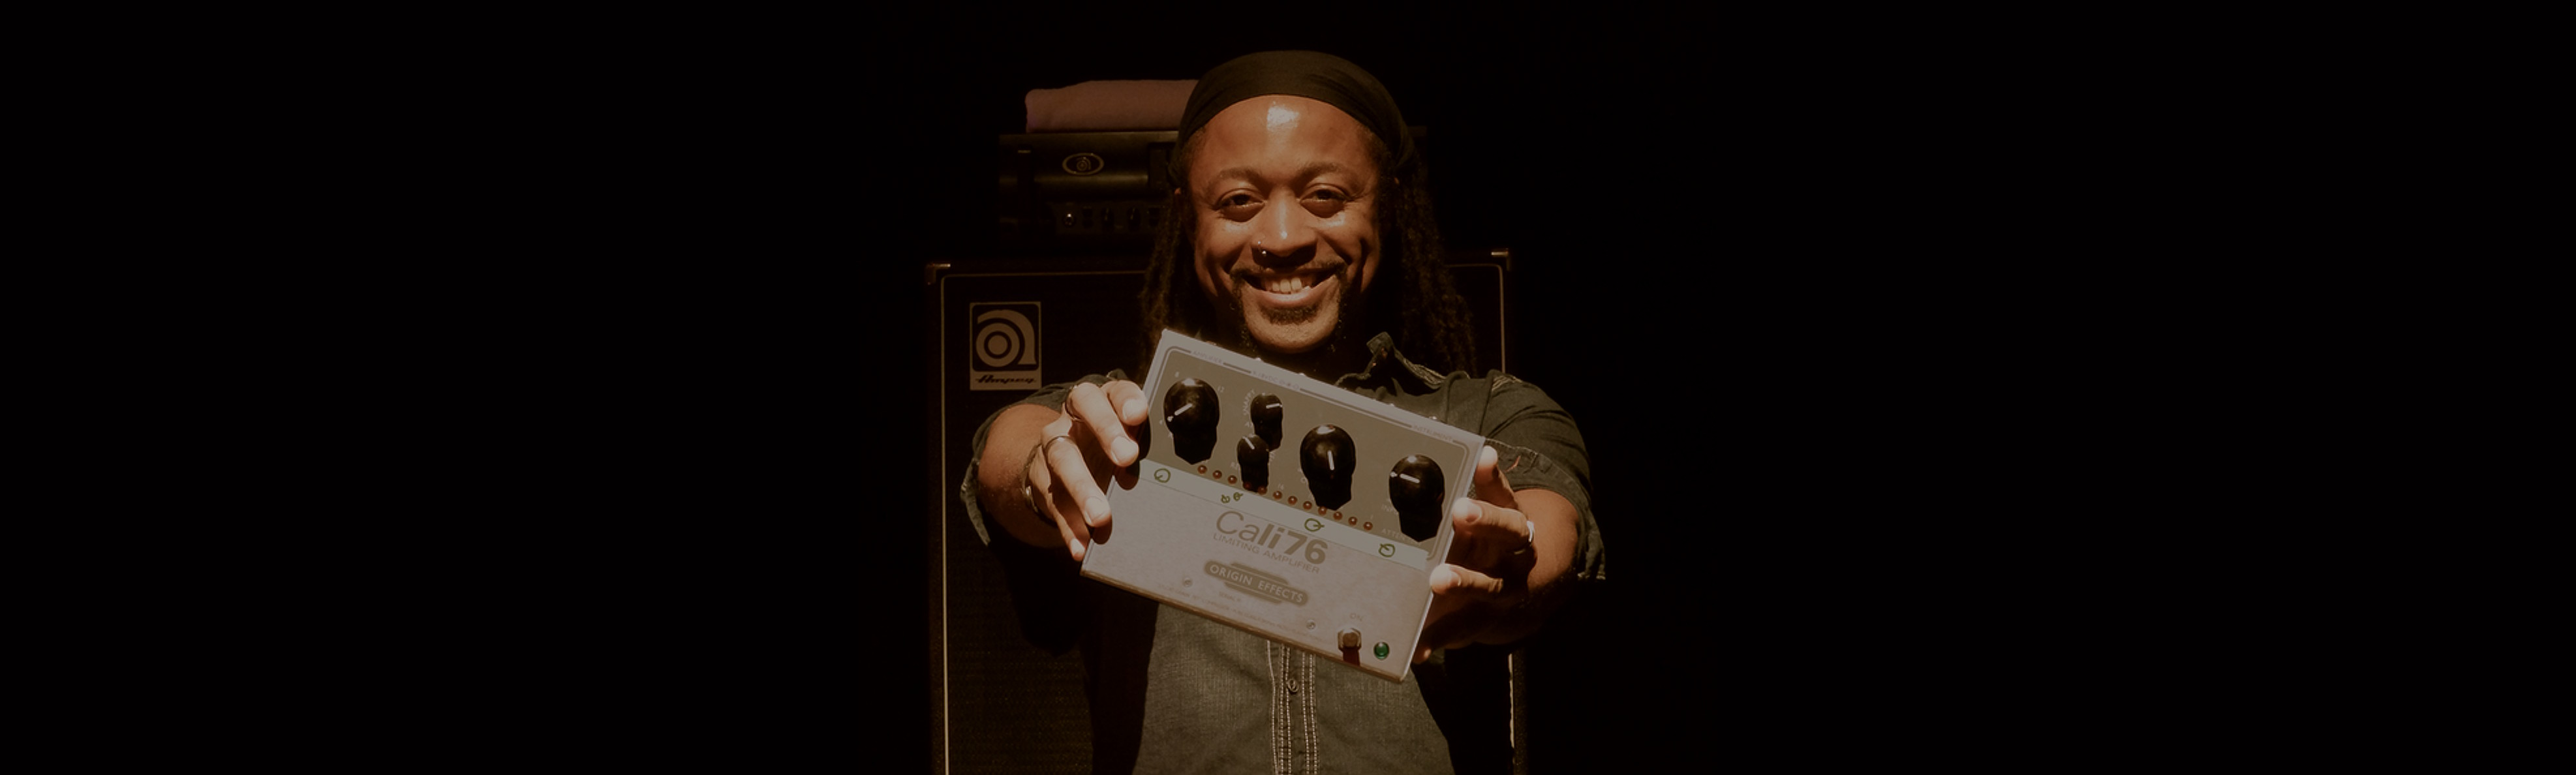 Francis Hylton with his Cali76-TX compressor pedal. Chaka Khan, Incognito